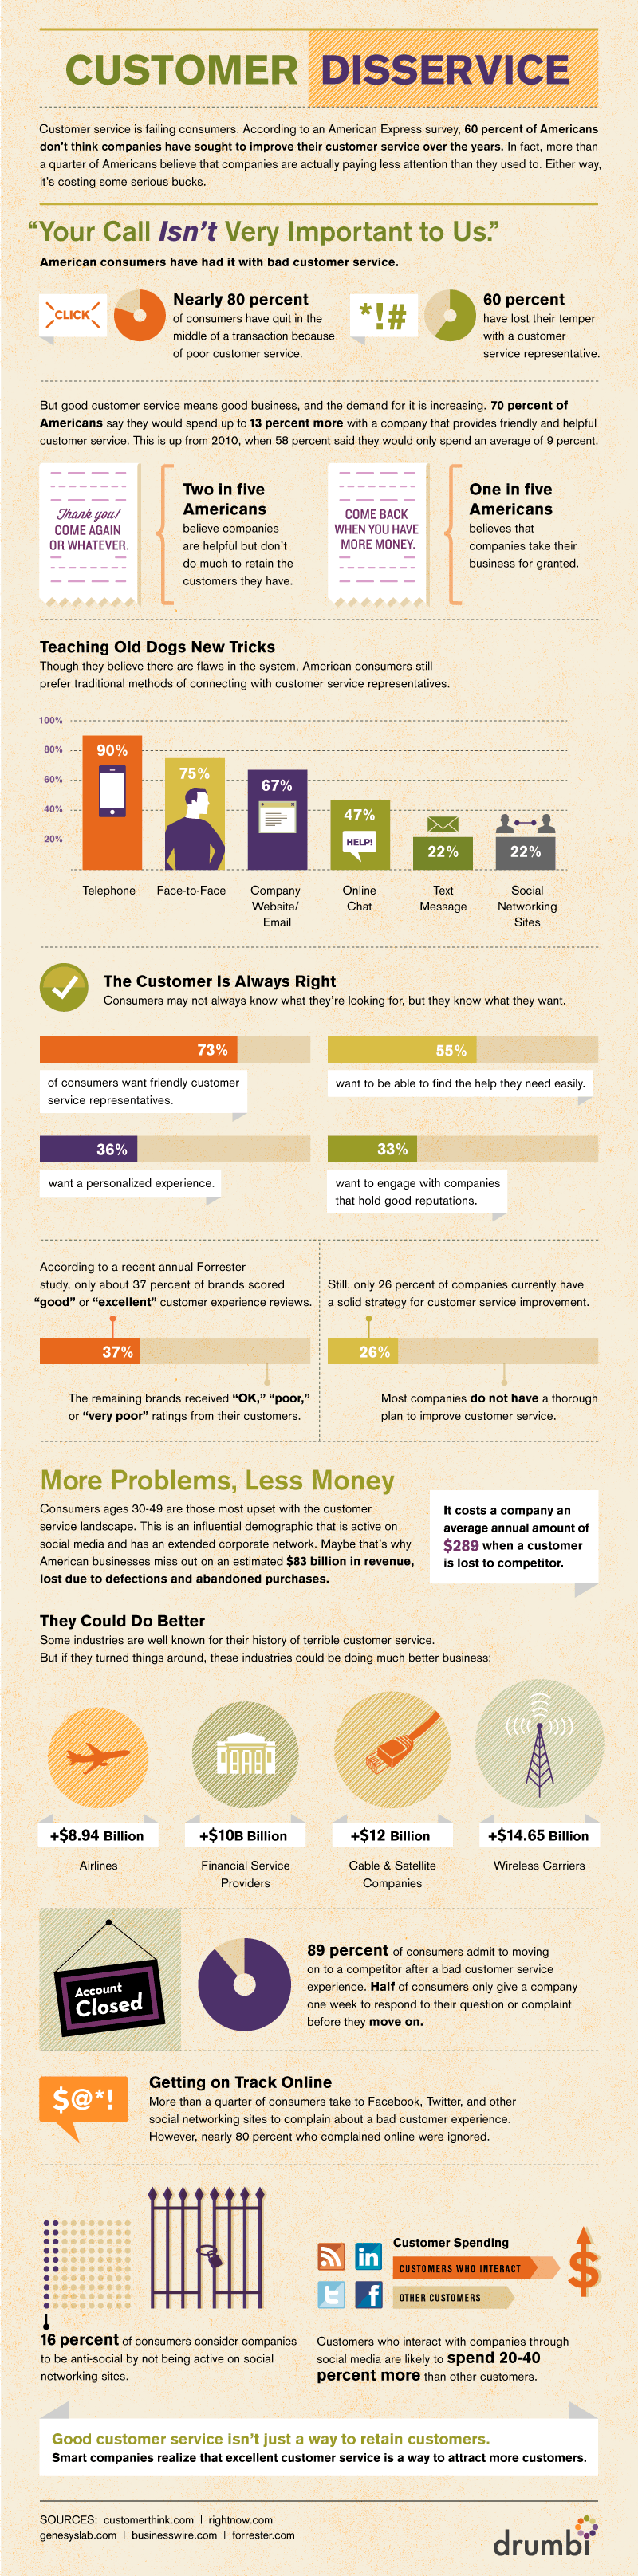 customer disservice infographic